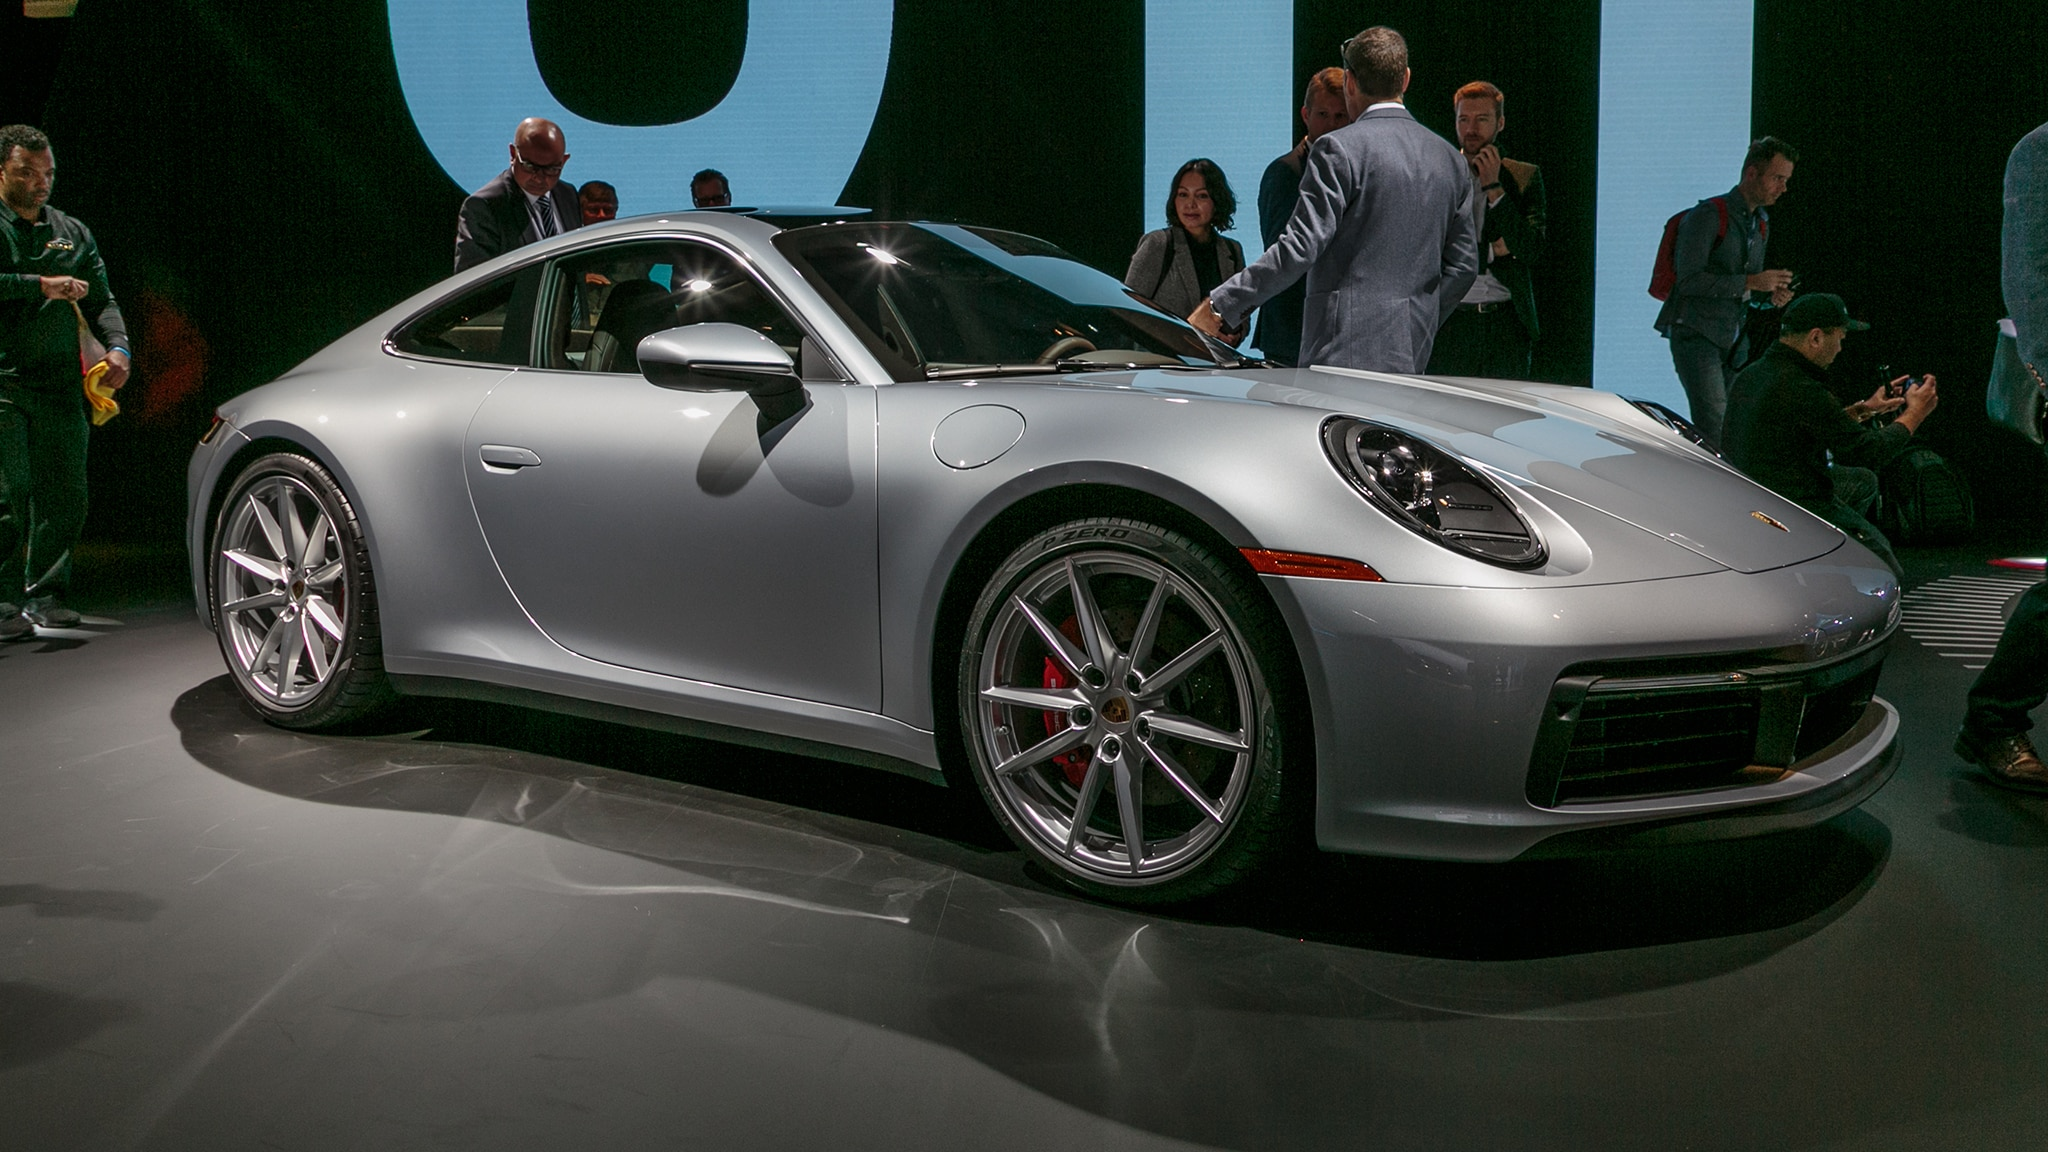 2020 Porsche 911 All About The All New 992 Generation